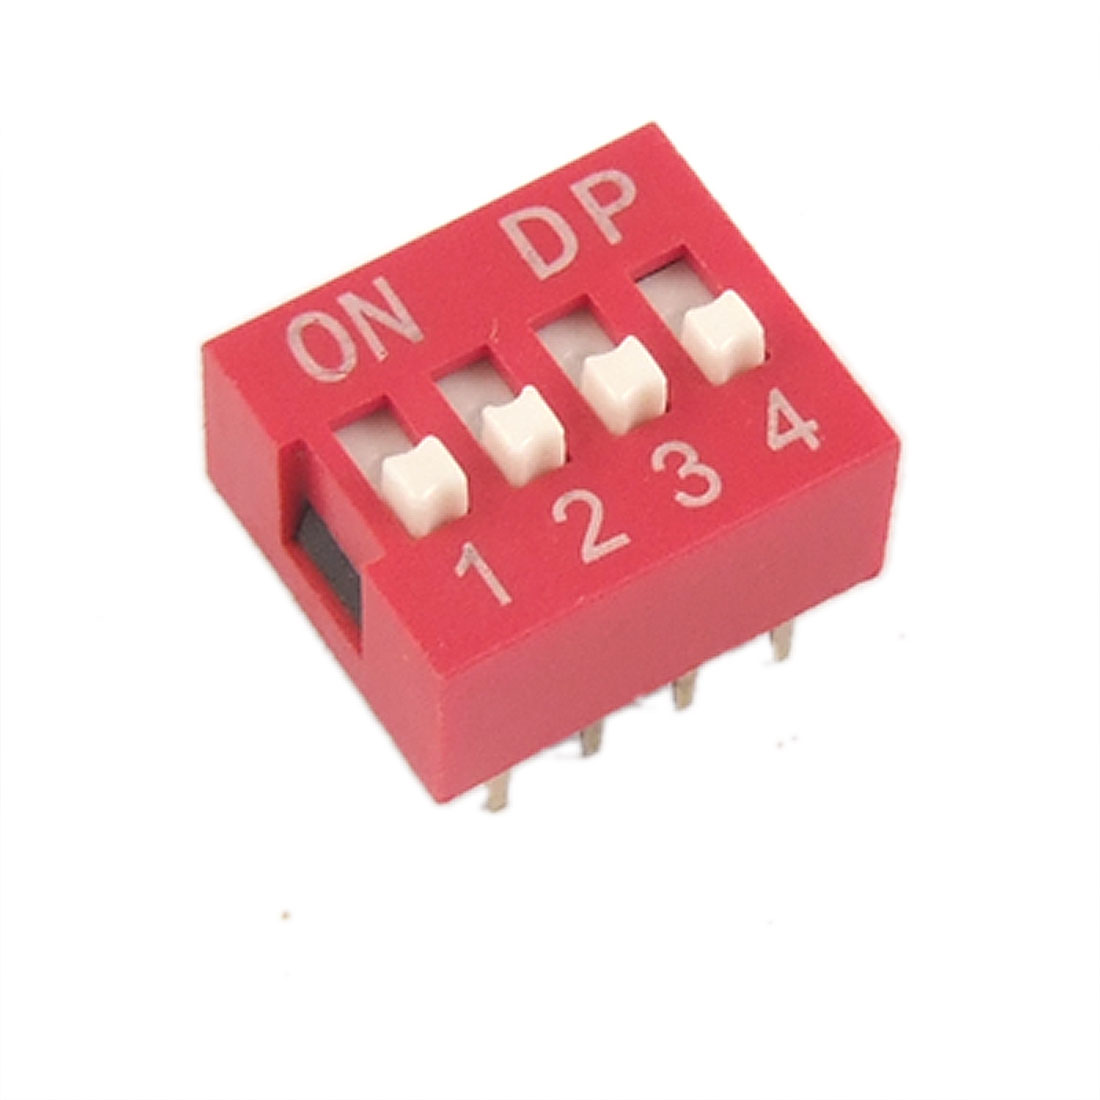 10 Pcs 2.54mm Pitch 4 Position Slide Style DIP Switches Red